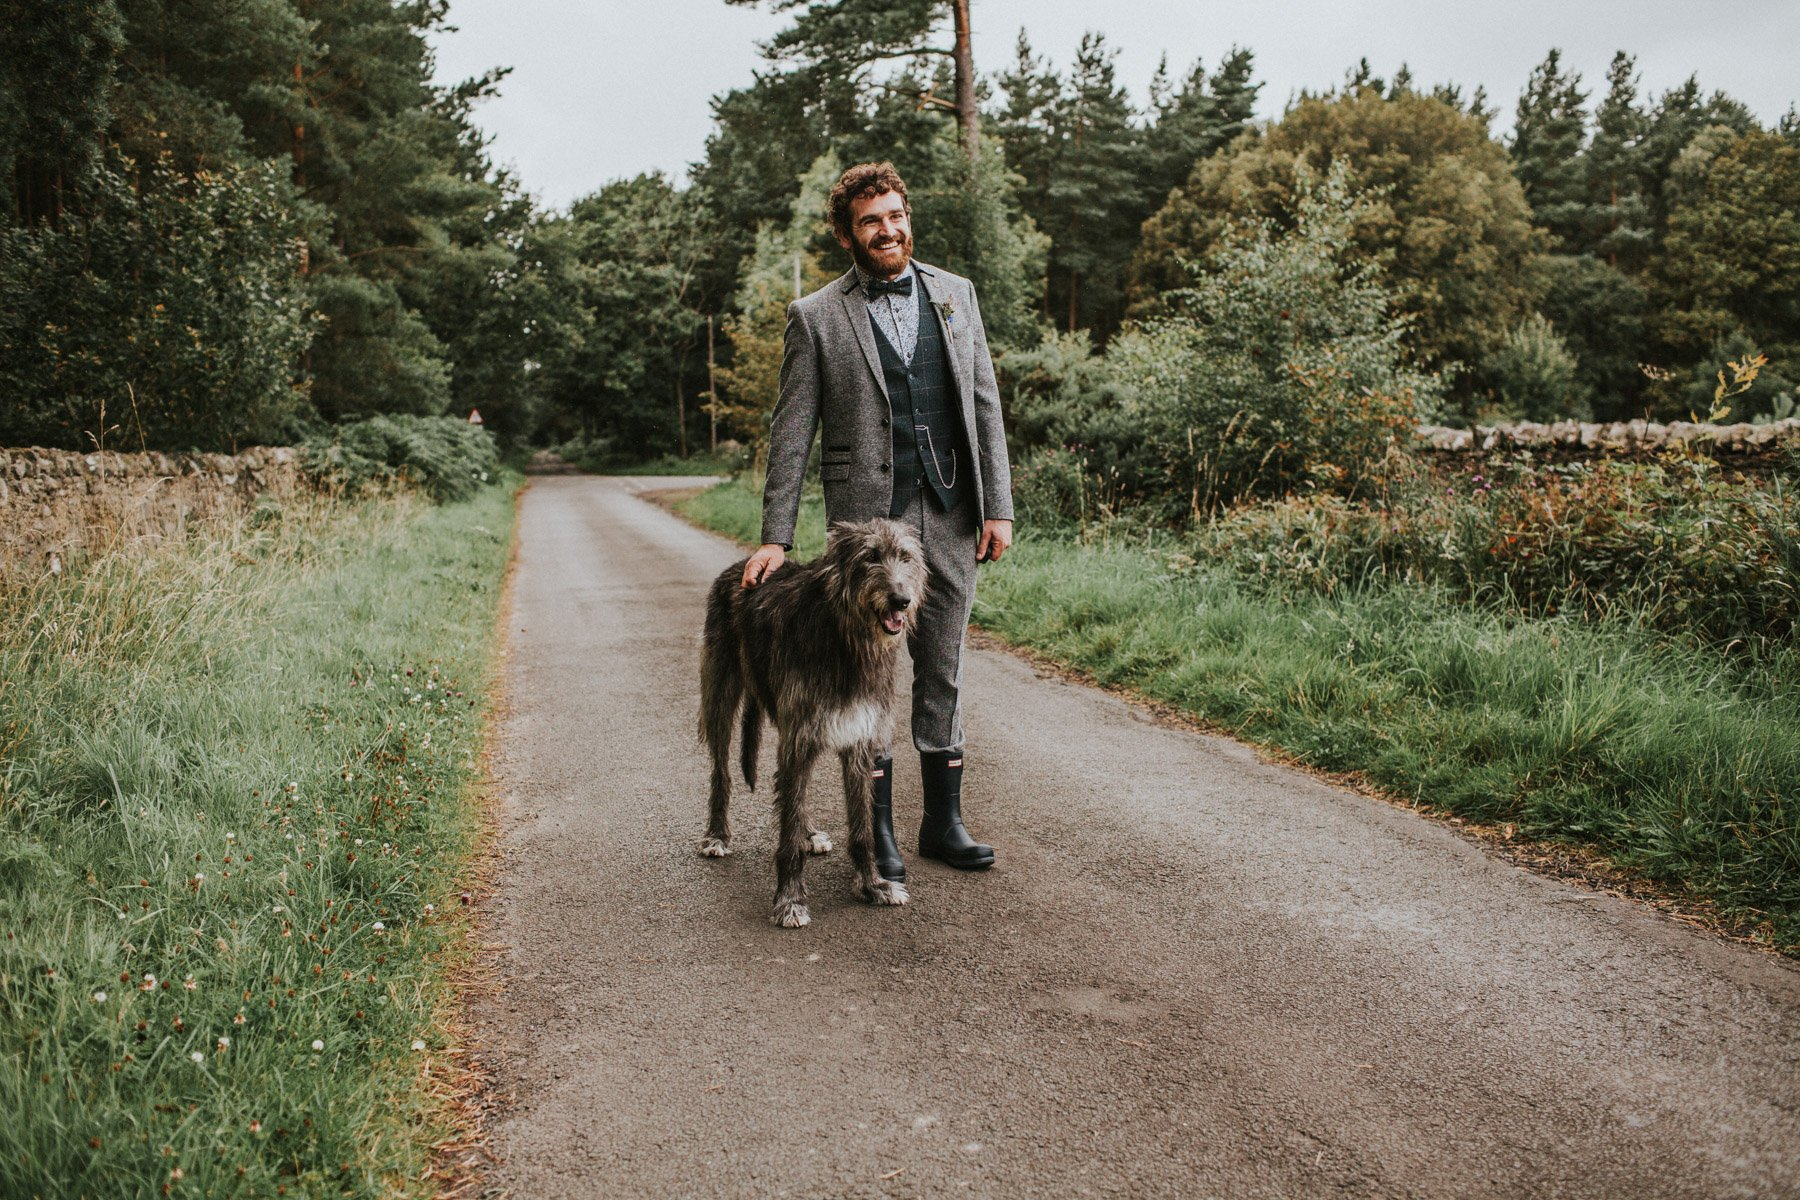 Healey Barn Wedding photography - the groom and his dog